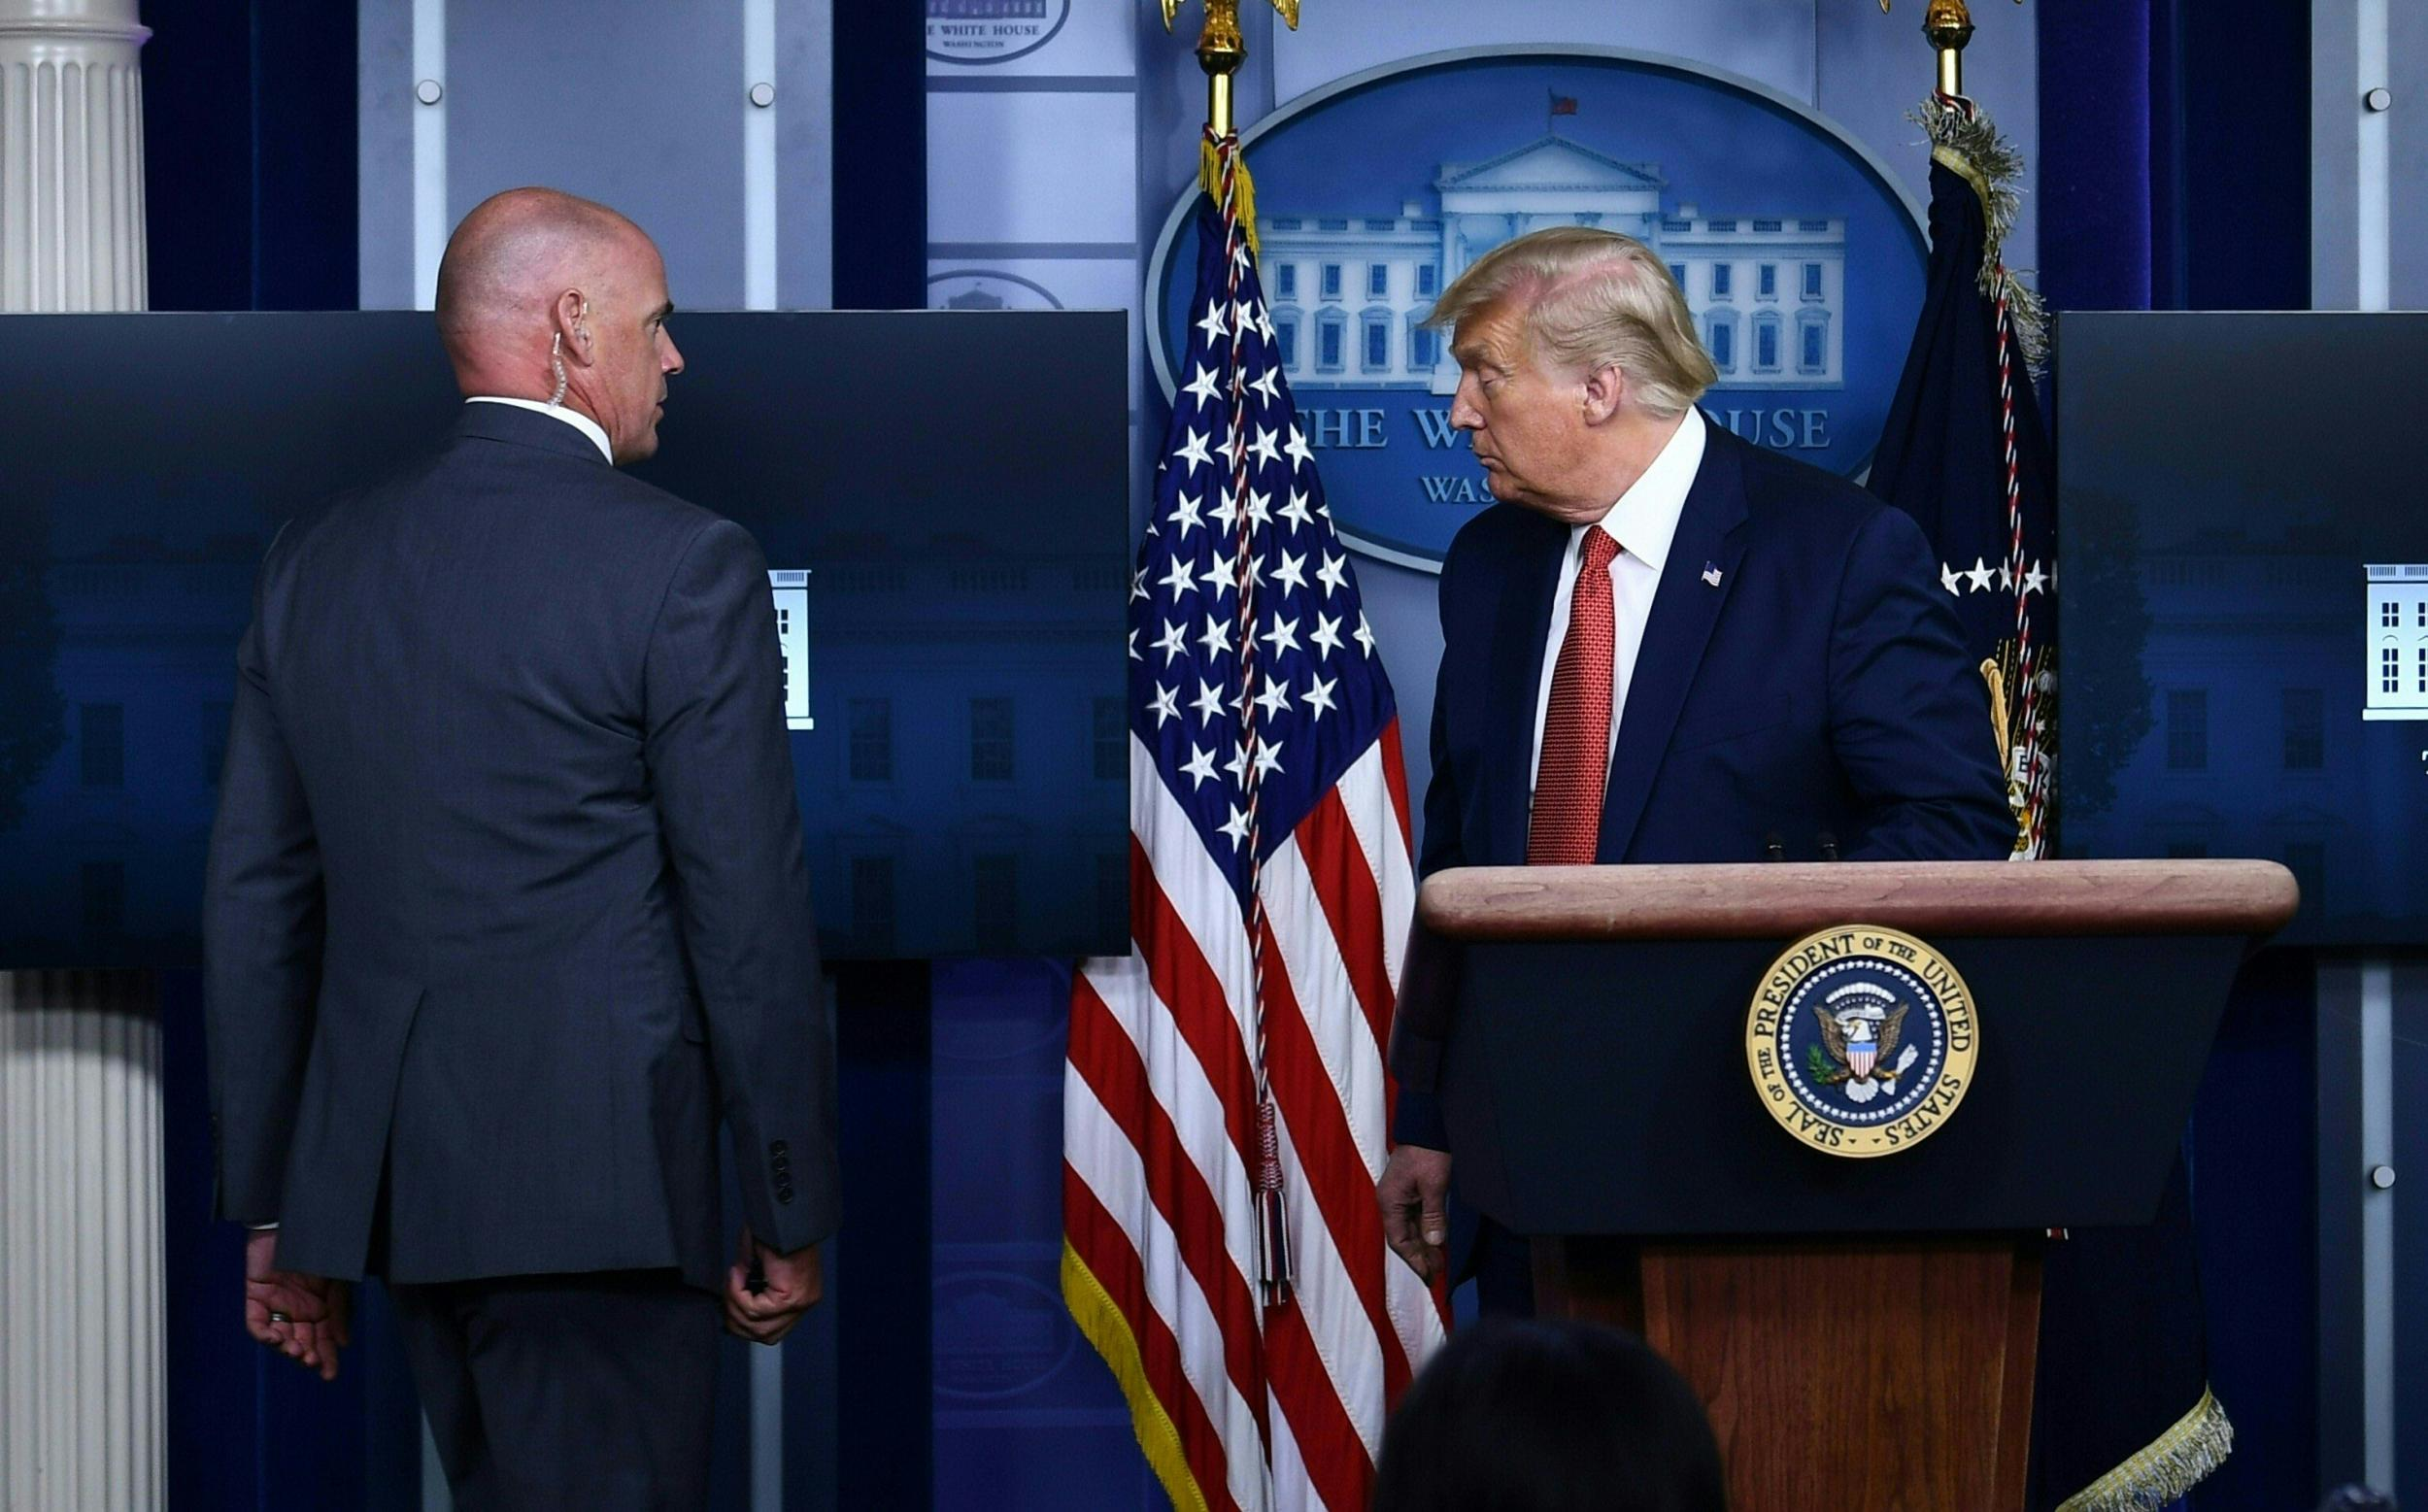 Trump scrambled to safety by secret service after White House shooting